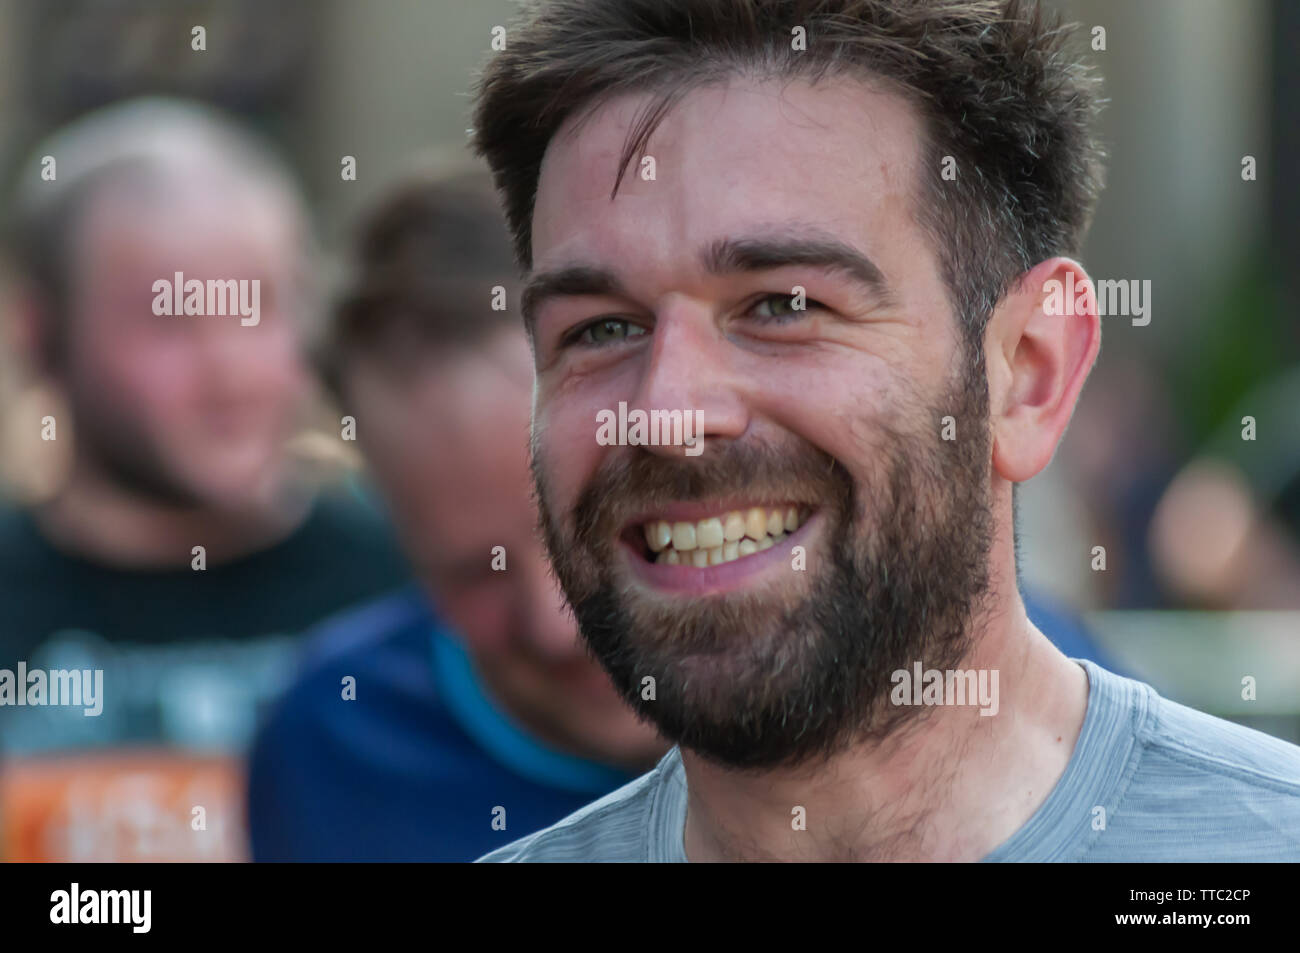 Glasgow, Scotland, UK. 16th June, 2019. A runner at George Square during the Men's 10K Run which has been an annual event since 2004. Thousands of runners take to the streets of the city to get fit, fundraise, and raise awareness of men's health issues. The run coincides with Fathers Day and starts at the Riverside Museum and  finishes at George Square. Credit: Skully/Alamy Live News - Stock Image